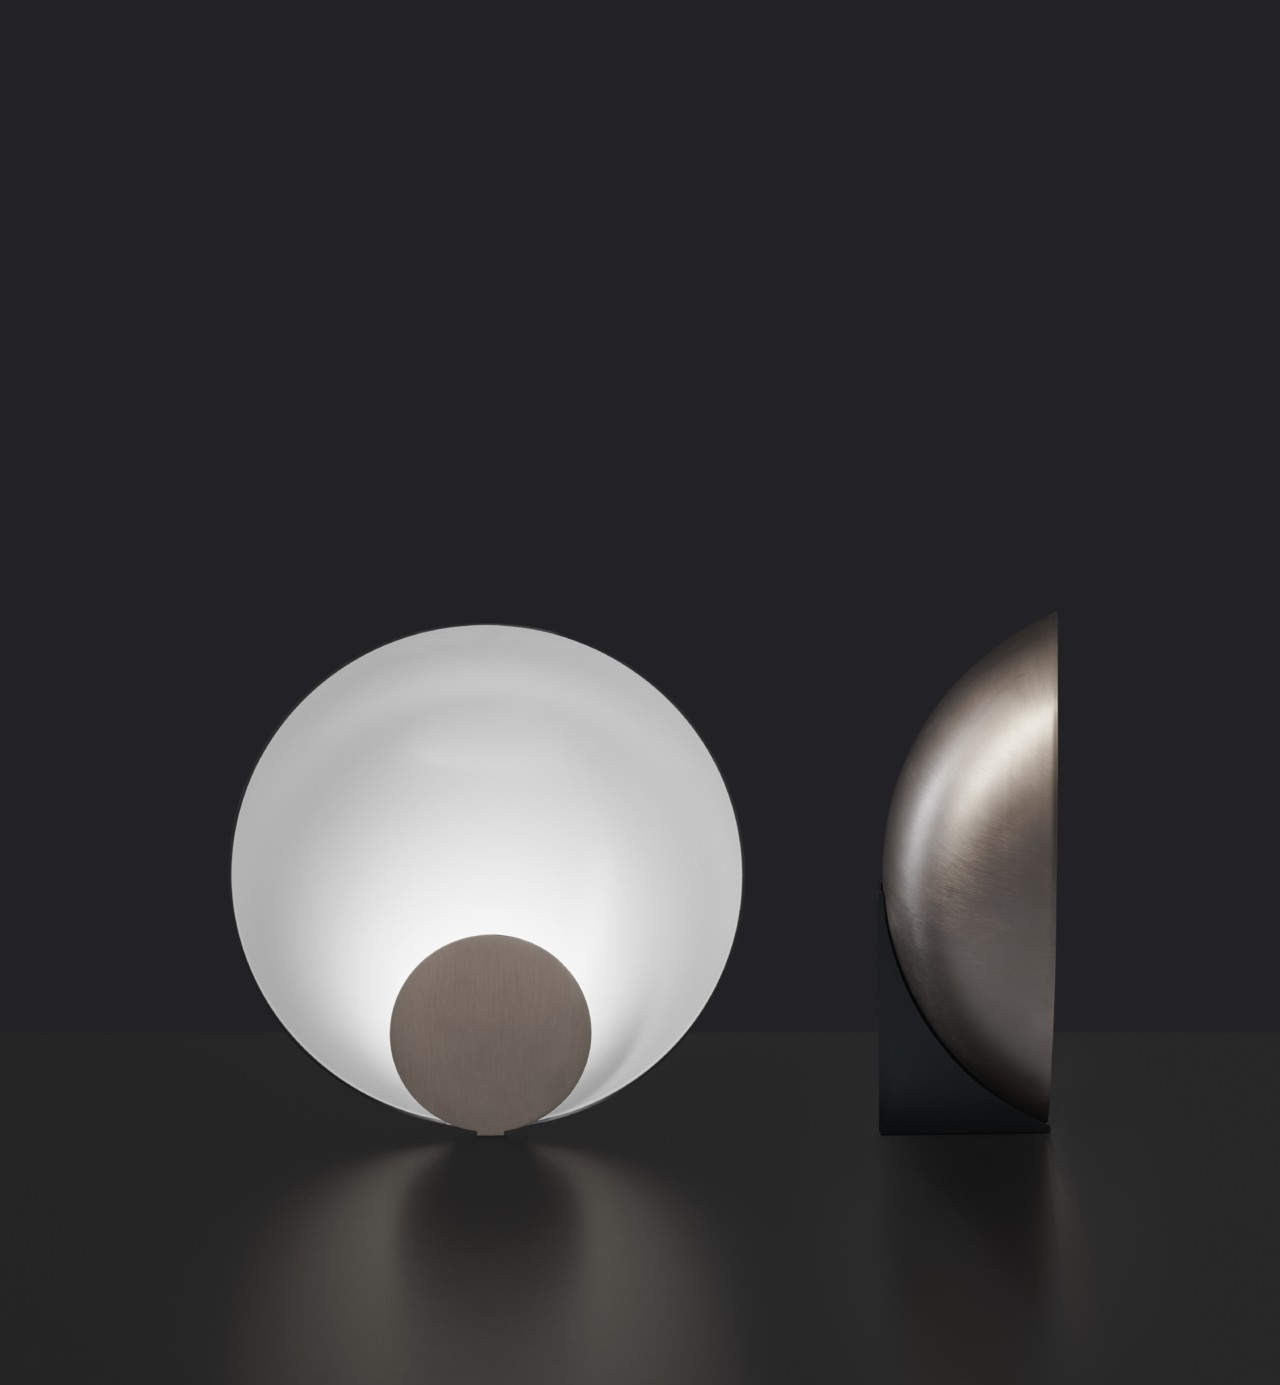 The Siro Table Lamp Derives From the Brightest Star in the Sky